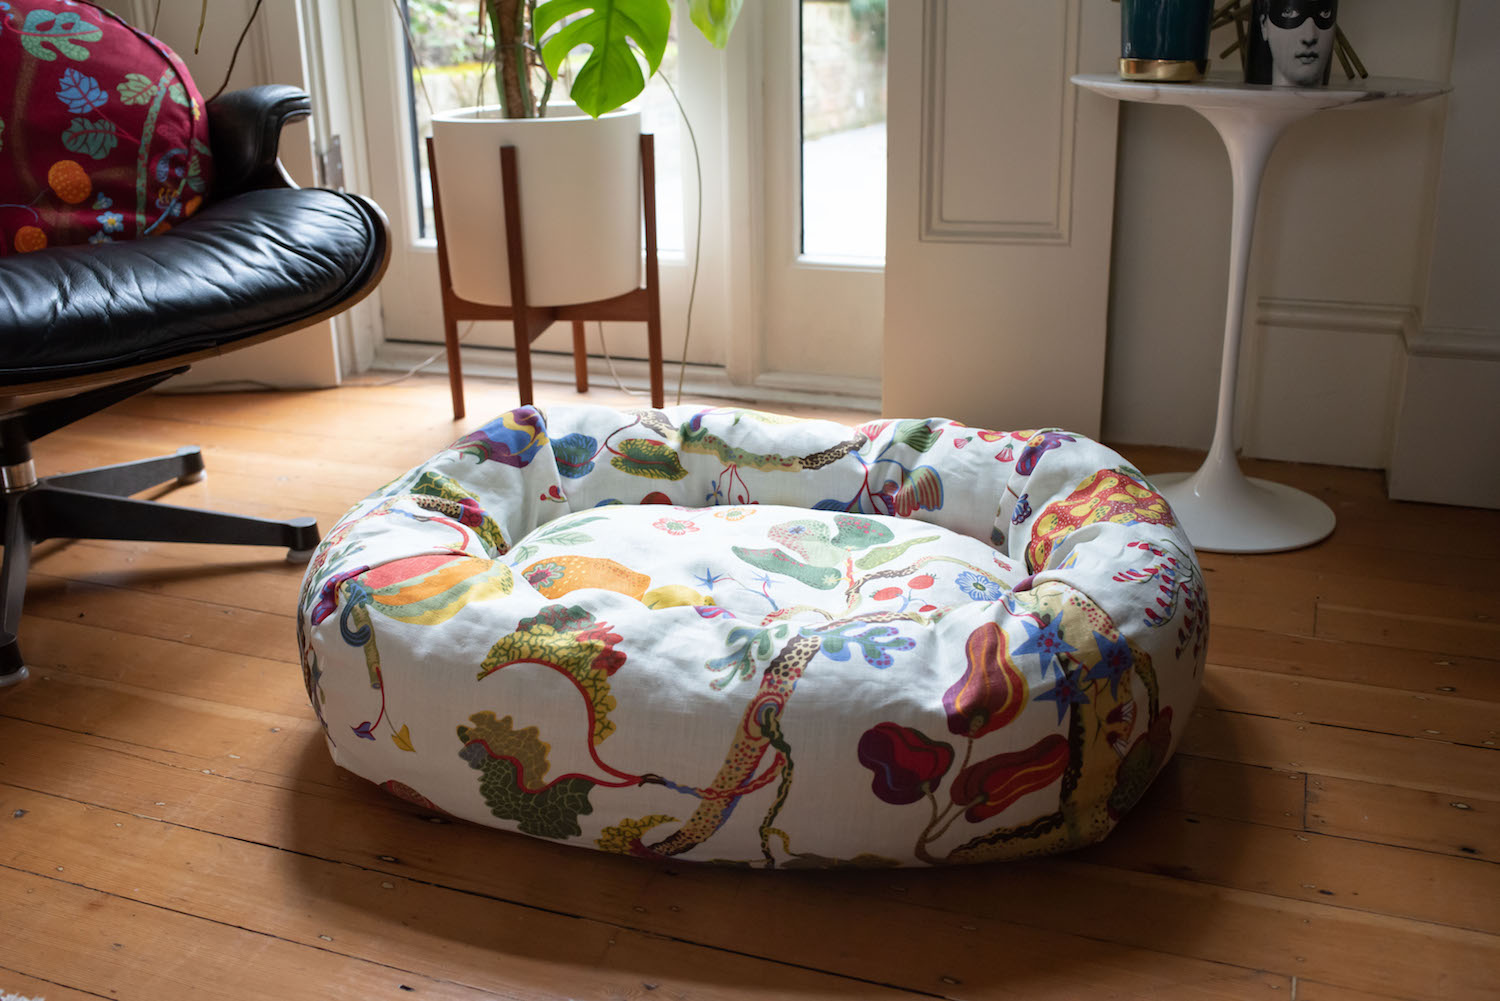 CREATE YOUR OWN DOG BED